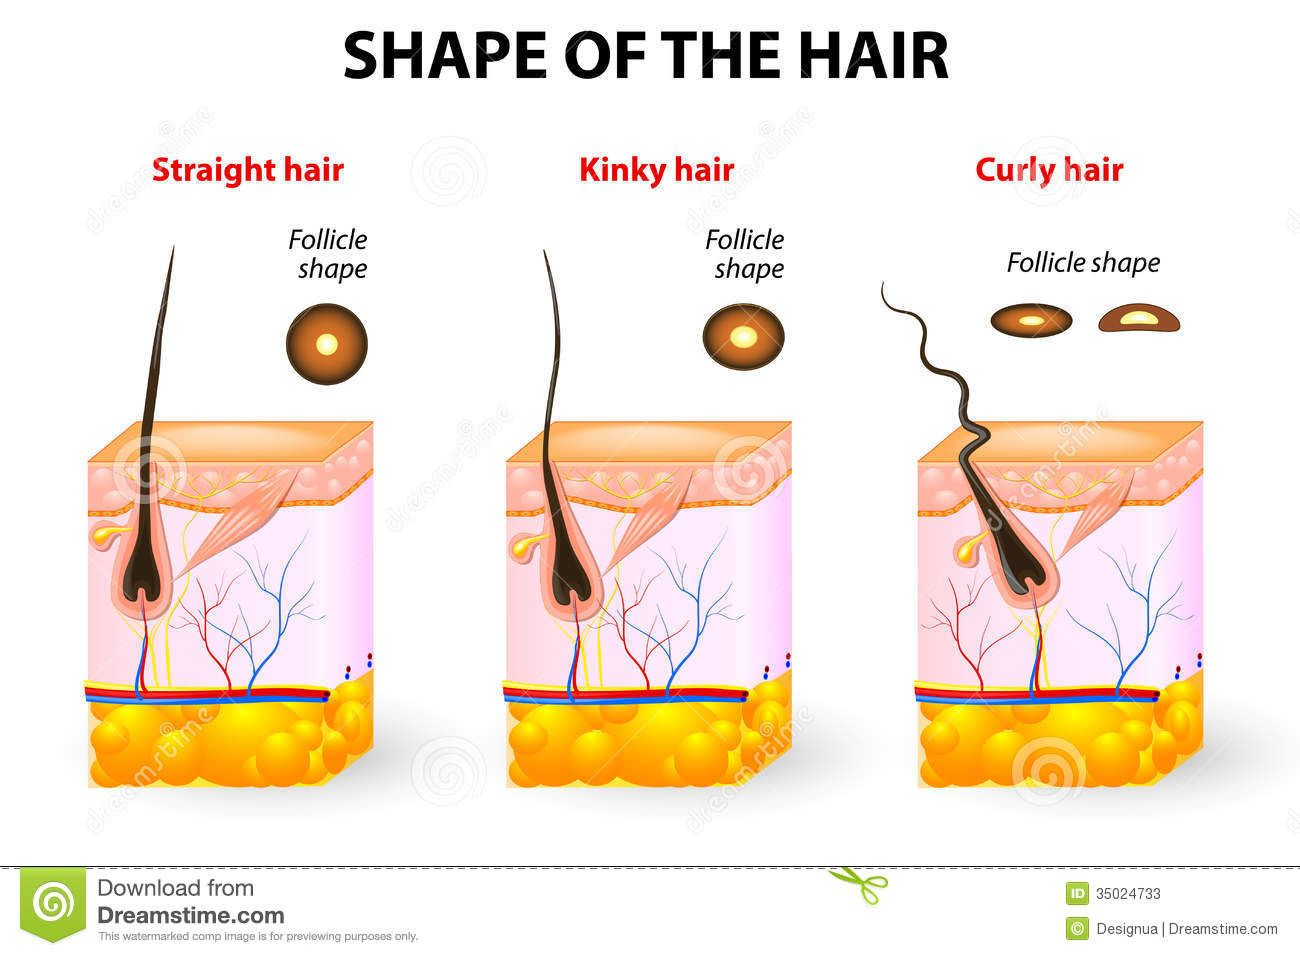 shape-hair-hair-anatomy-types-cross-section-different-texture ...